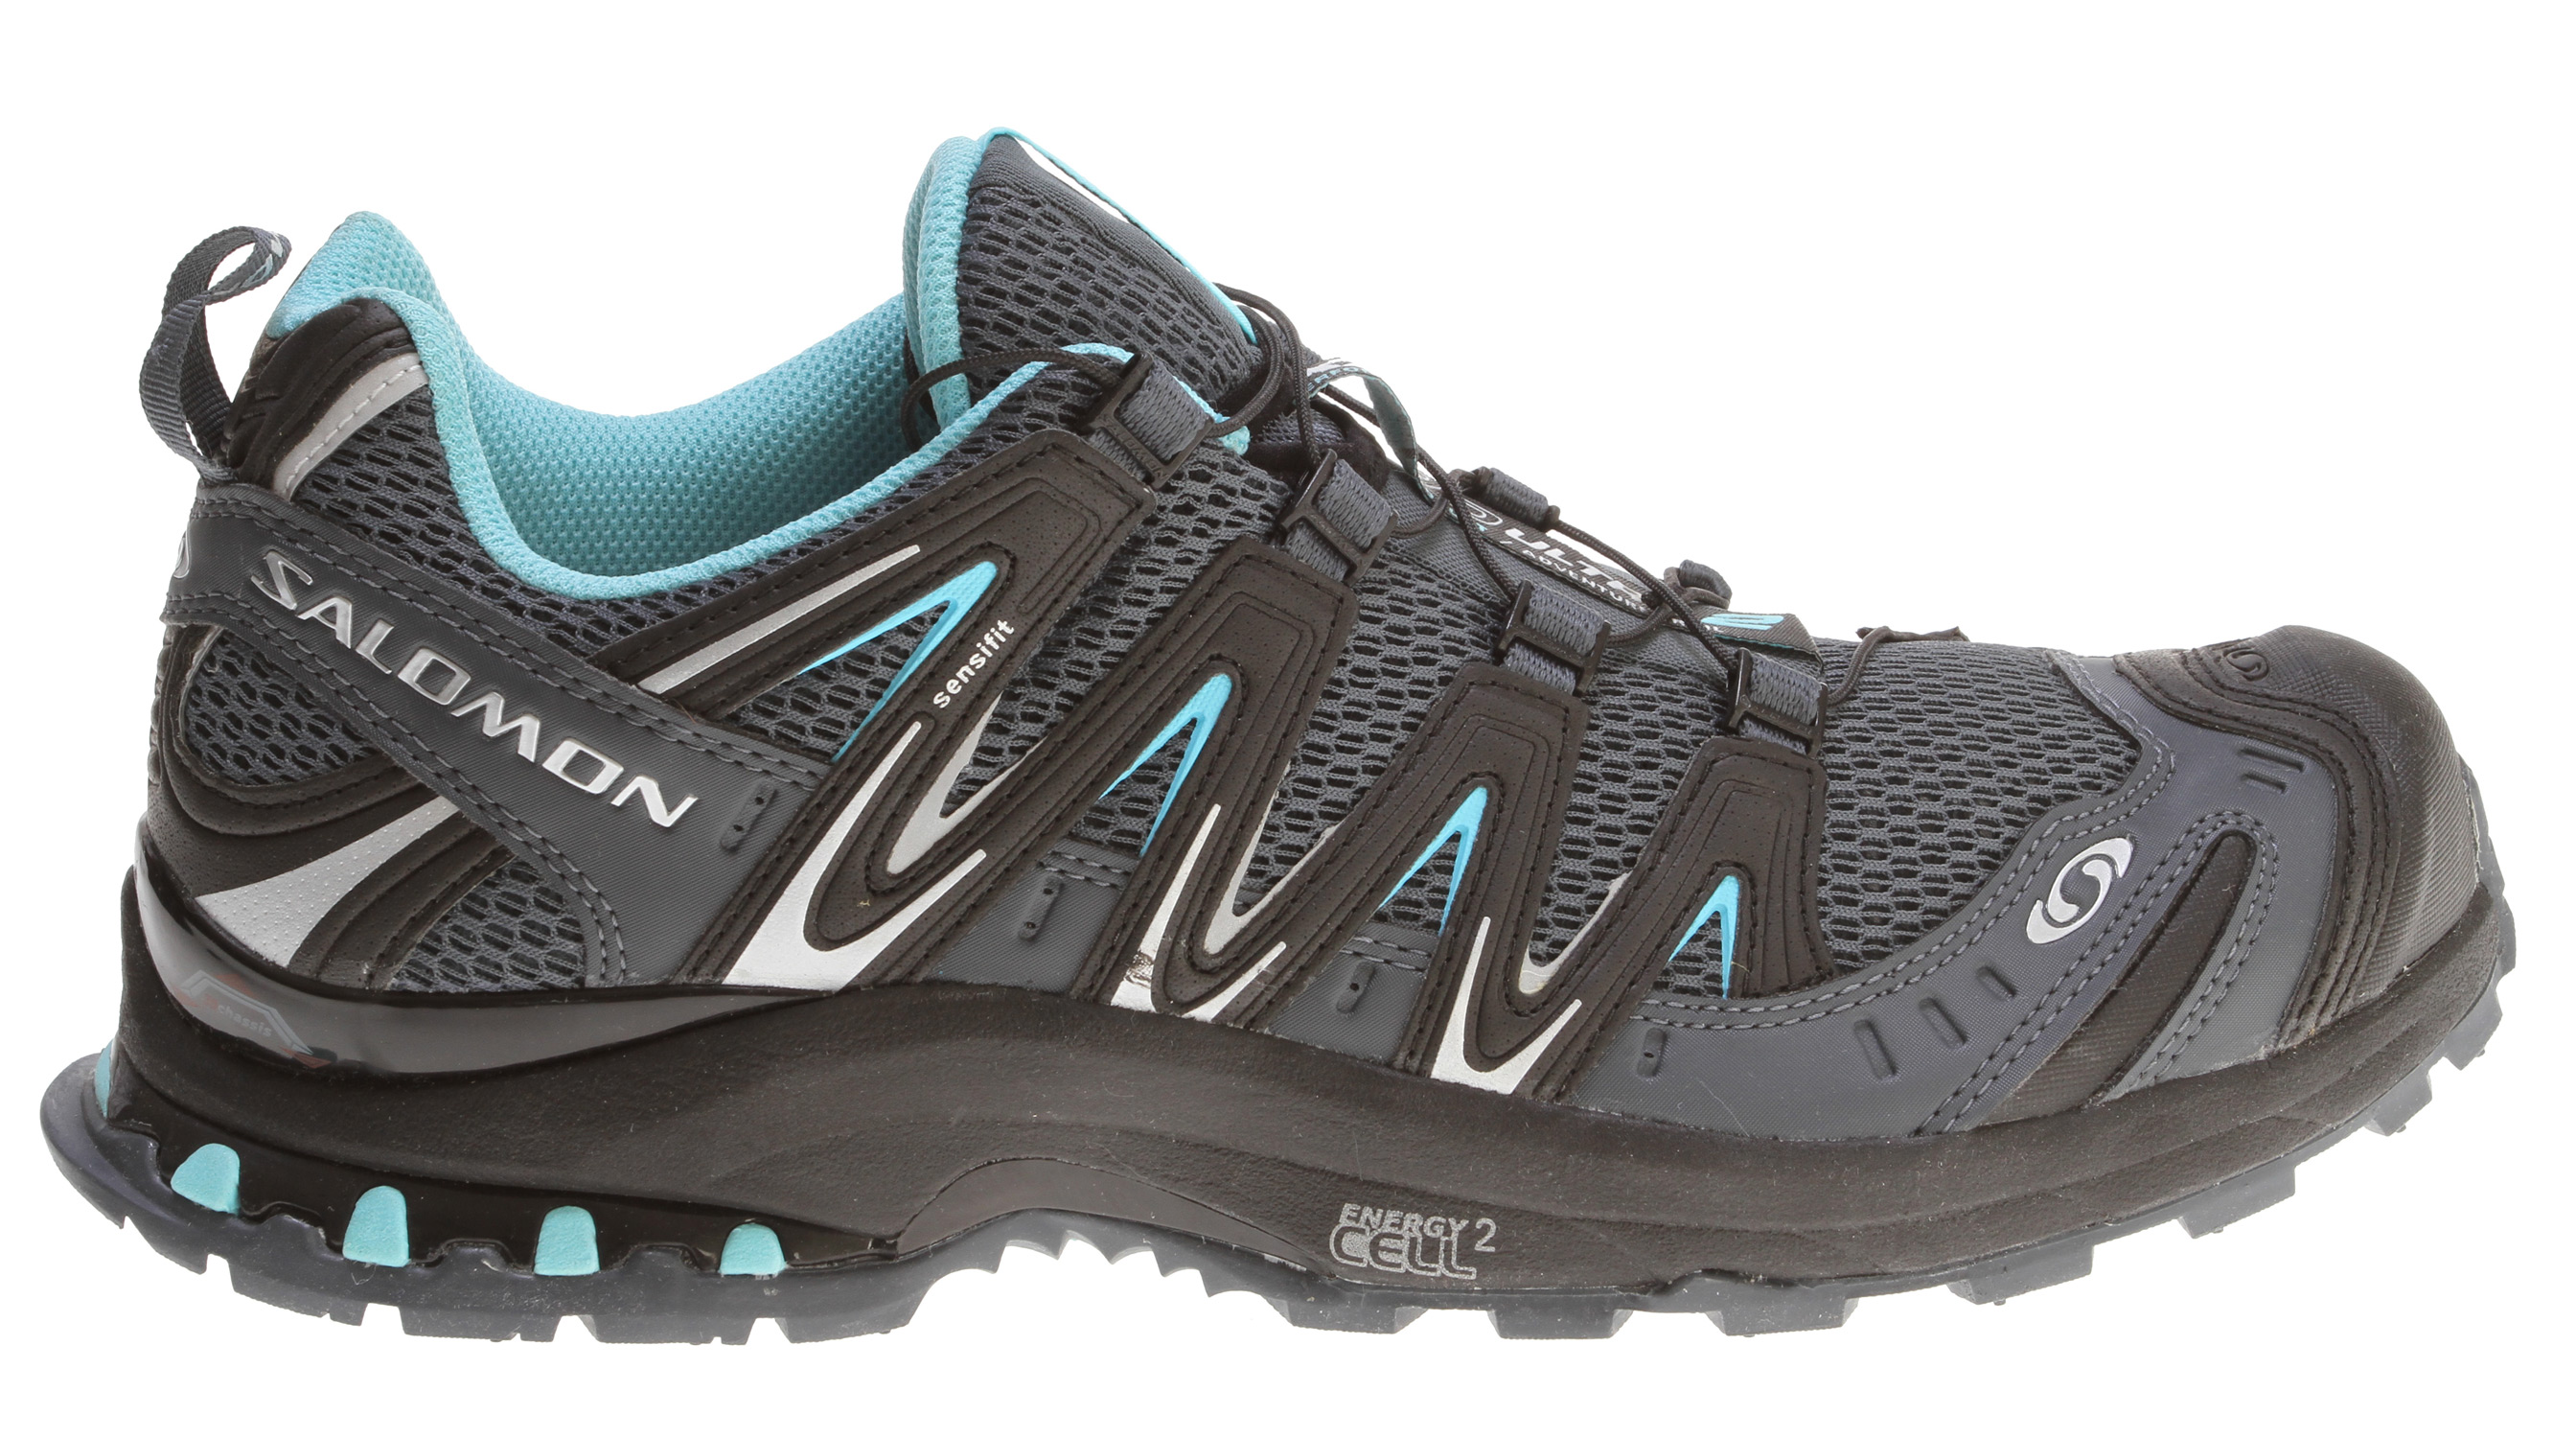 Camp and Hike Mountain trail running shoe with added ankle support of a mid cut and GORE-TEX for year round climate comfort.Key Features of the Salomon XA Pro 3D Ultra 2 Hiking Shoe: Upper: Protective rubber toe cap Gusseted tongue Lace pocket Sensifit Protective heel cap Friction free lace eyelet EVA molded foam Mud guard Protective synthetic toe cap Quicklace Optimized fit for Women Anti-debris mesh Water Resistant textile Midsole: Du l density EVA Molded EVA Outsole: Non marking Contagrip Sockliner: Anatomical EVA footbed OrthoLite Chassis: Salomon Cushioning System 3D advanced chassis - $90.95